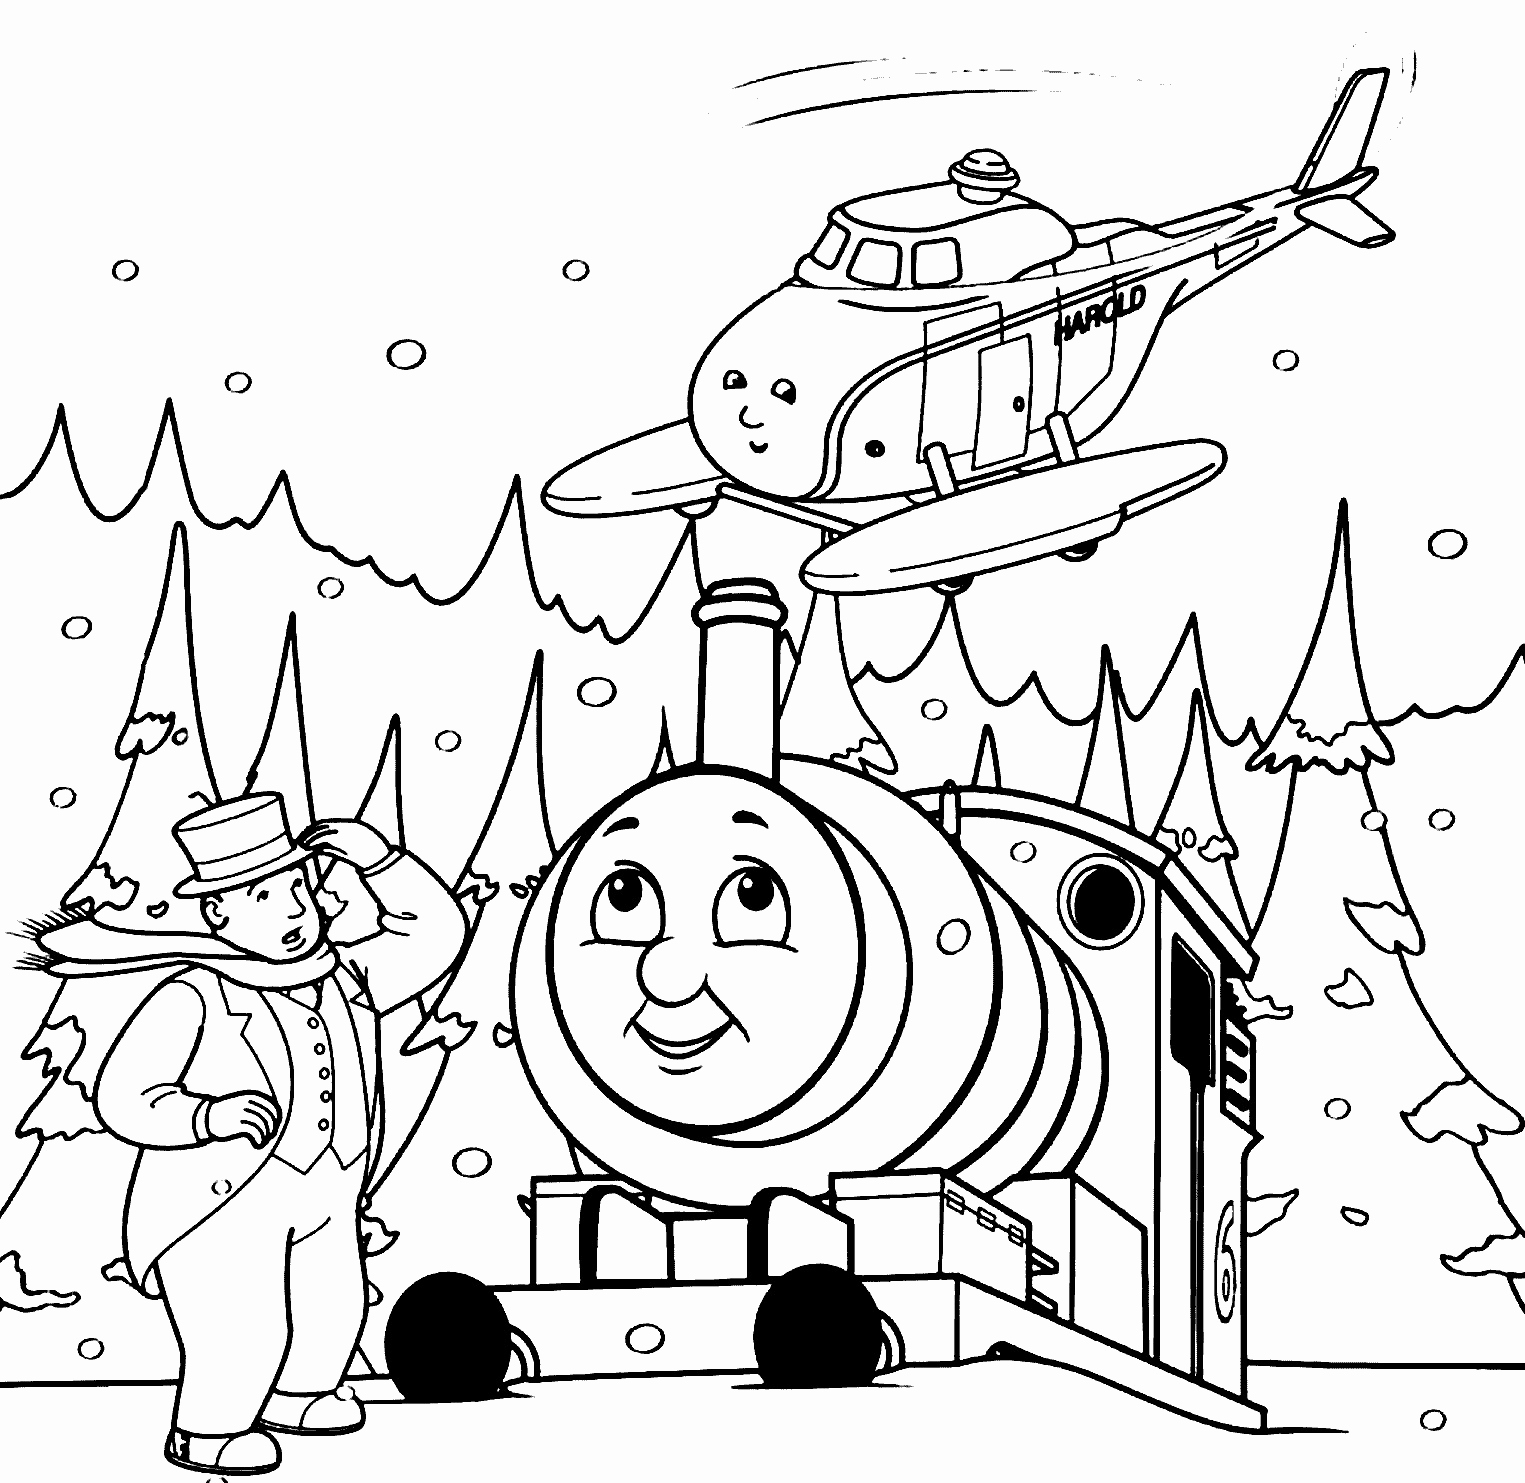 Thomas And Friends Coloring Pages at GetDrawings.com | Free for ...